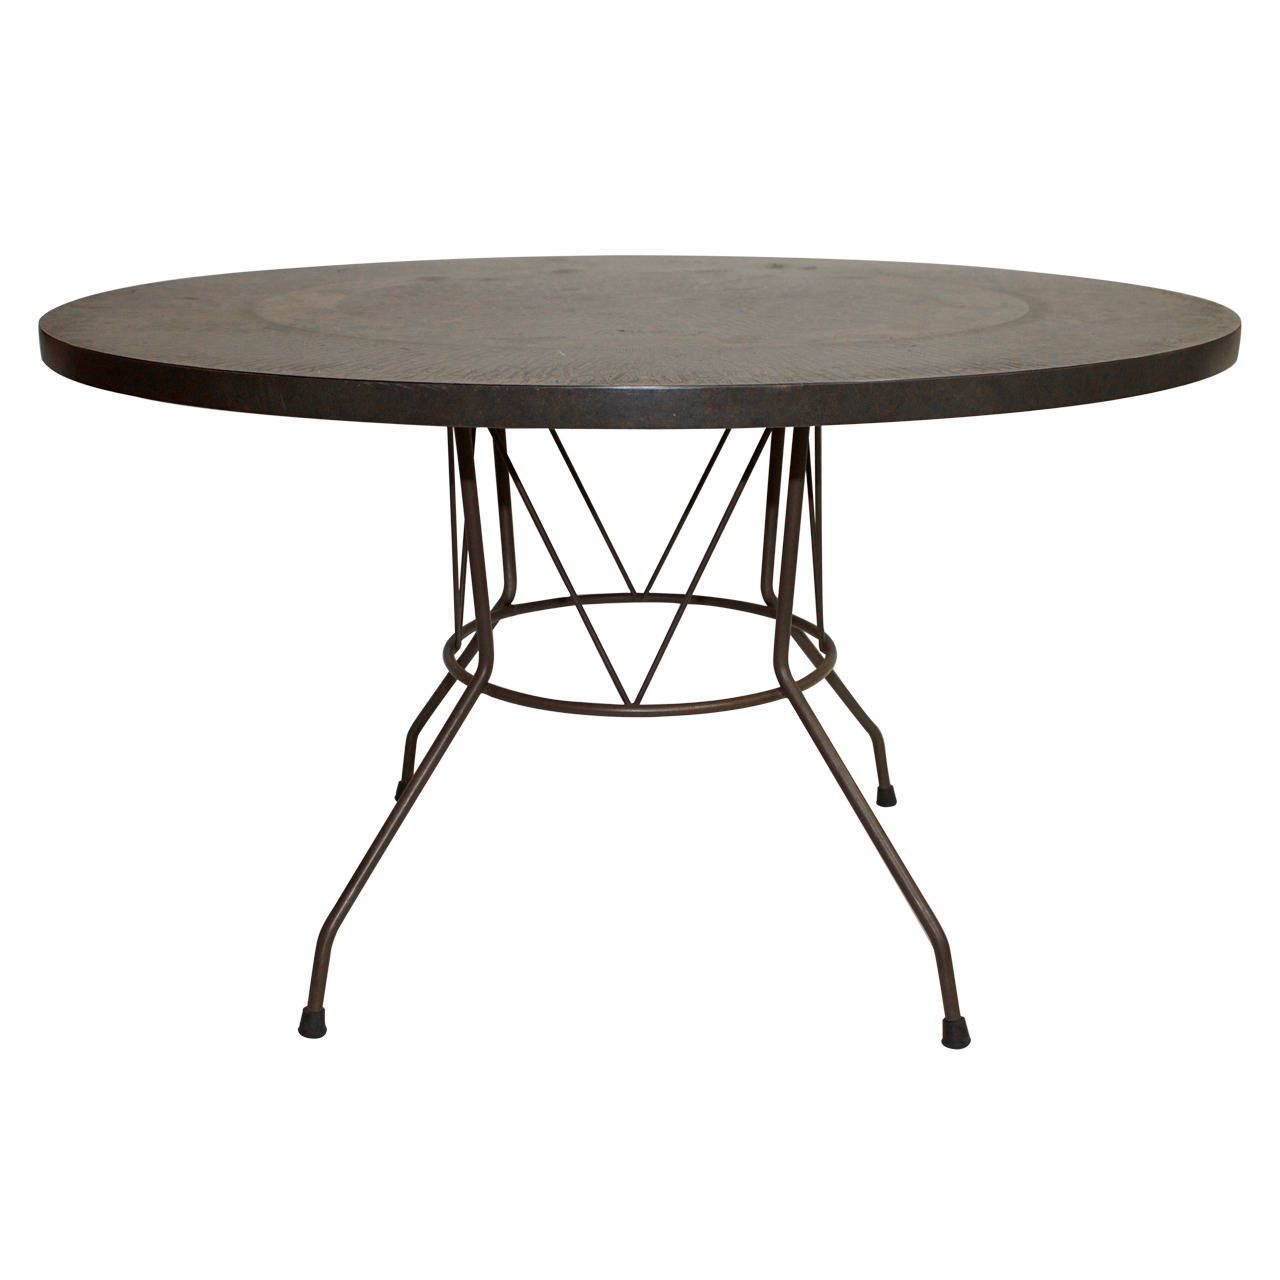 phillip collection furniture. Embossed Copper Laminate Round Table In The Manner Of Phillip Laverne Collection Furniture O